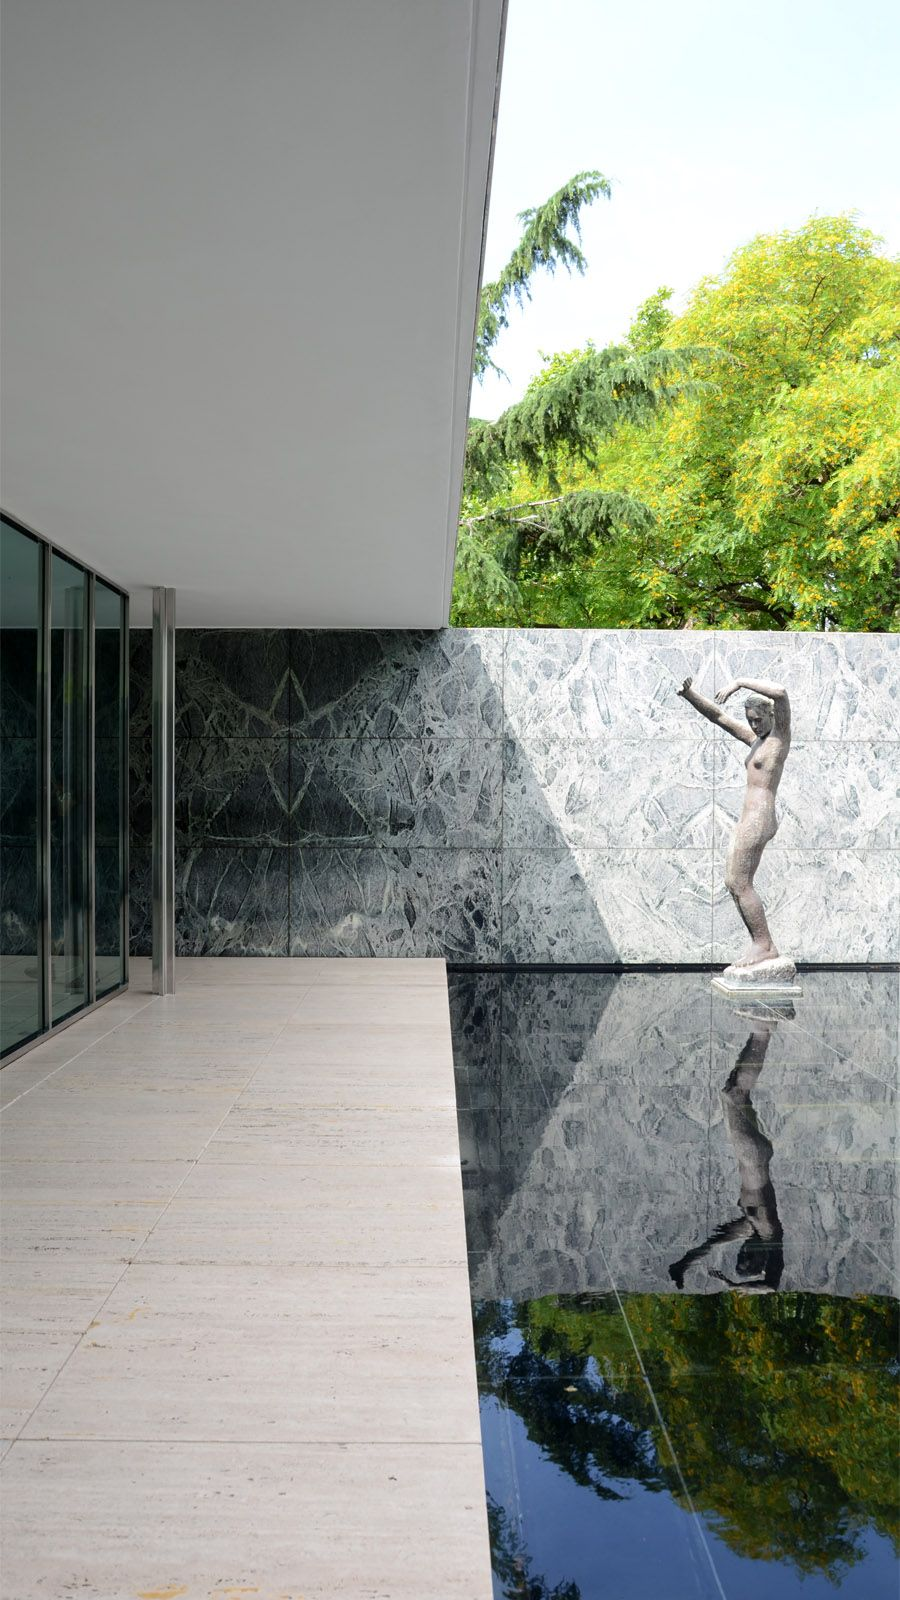 Barcelona Pavilion by Mies Van der Rohe. Photograph by @Jennifer Marshall